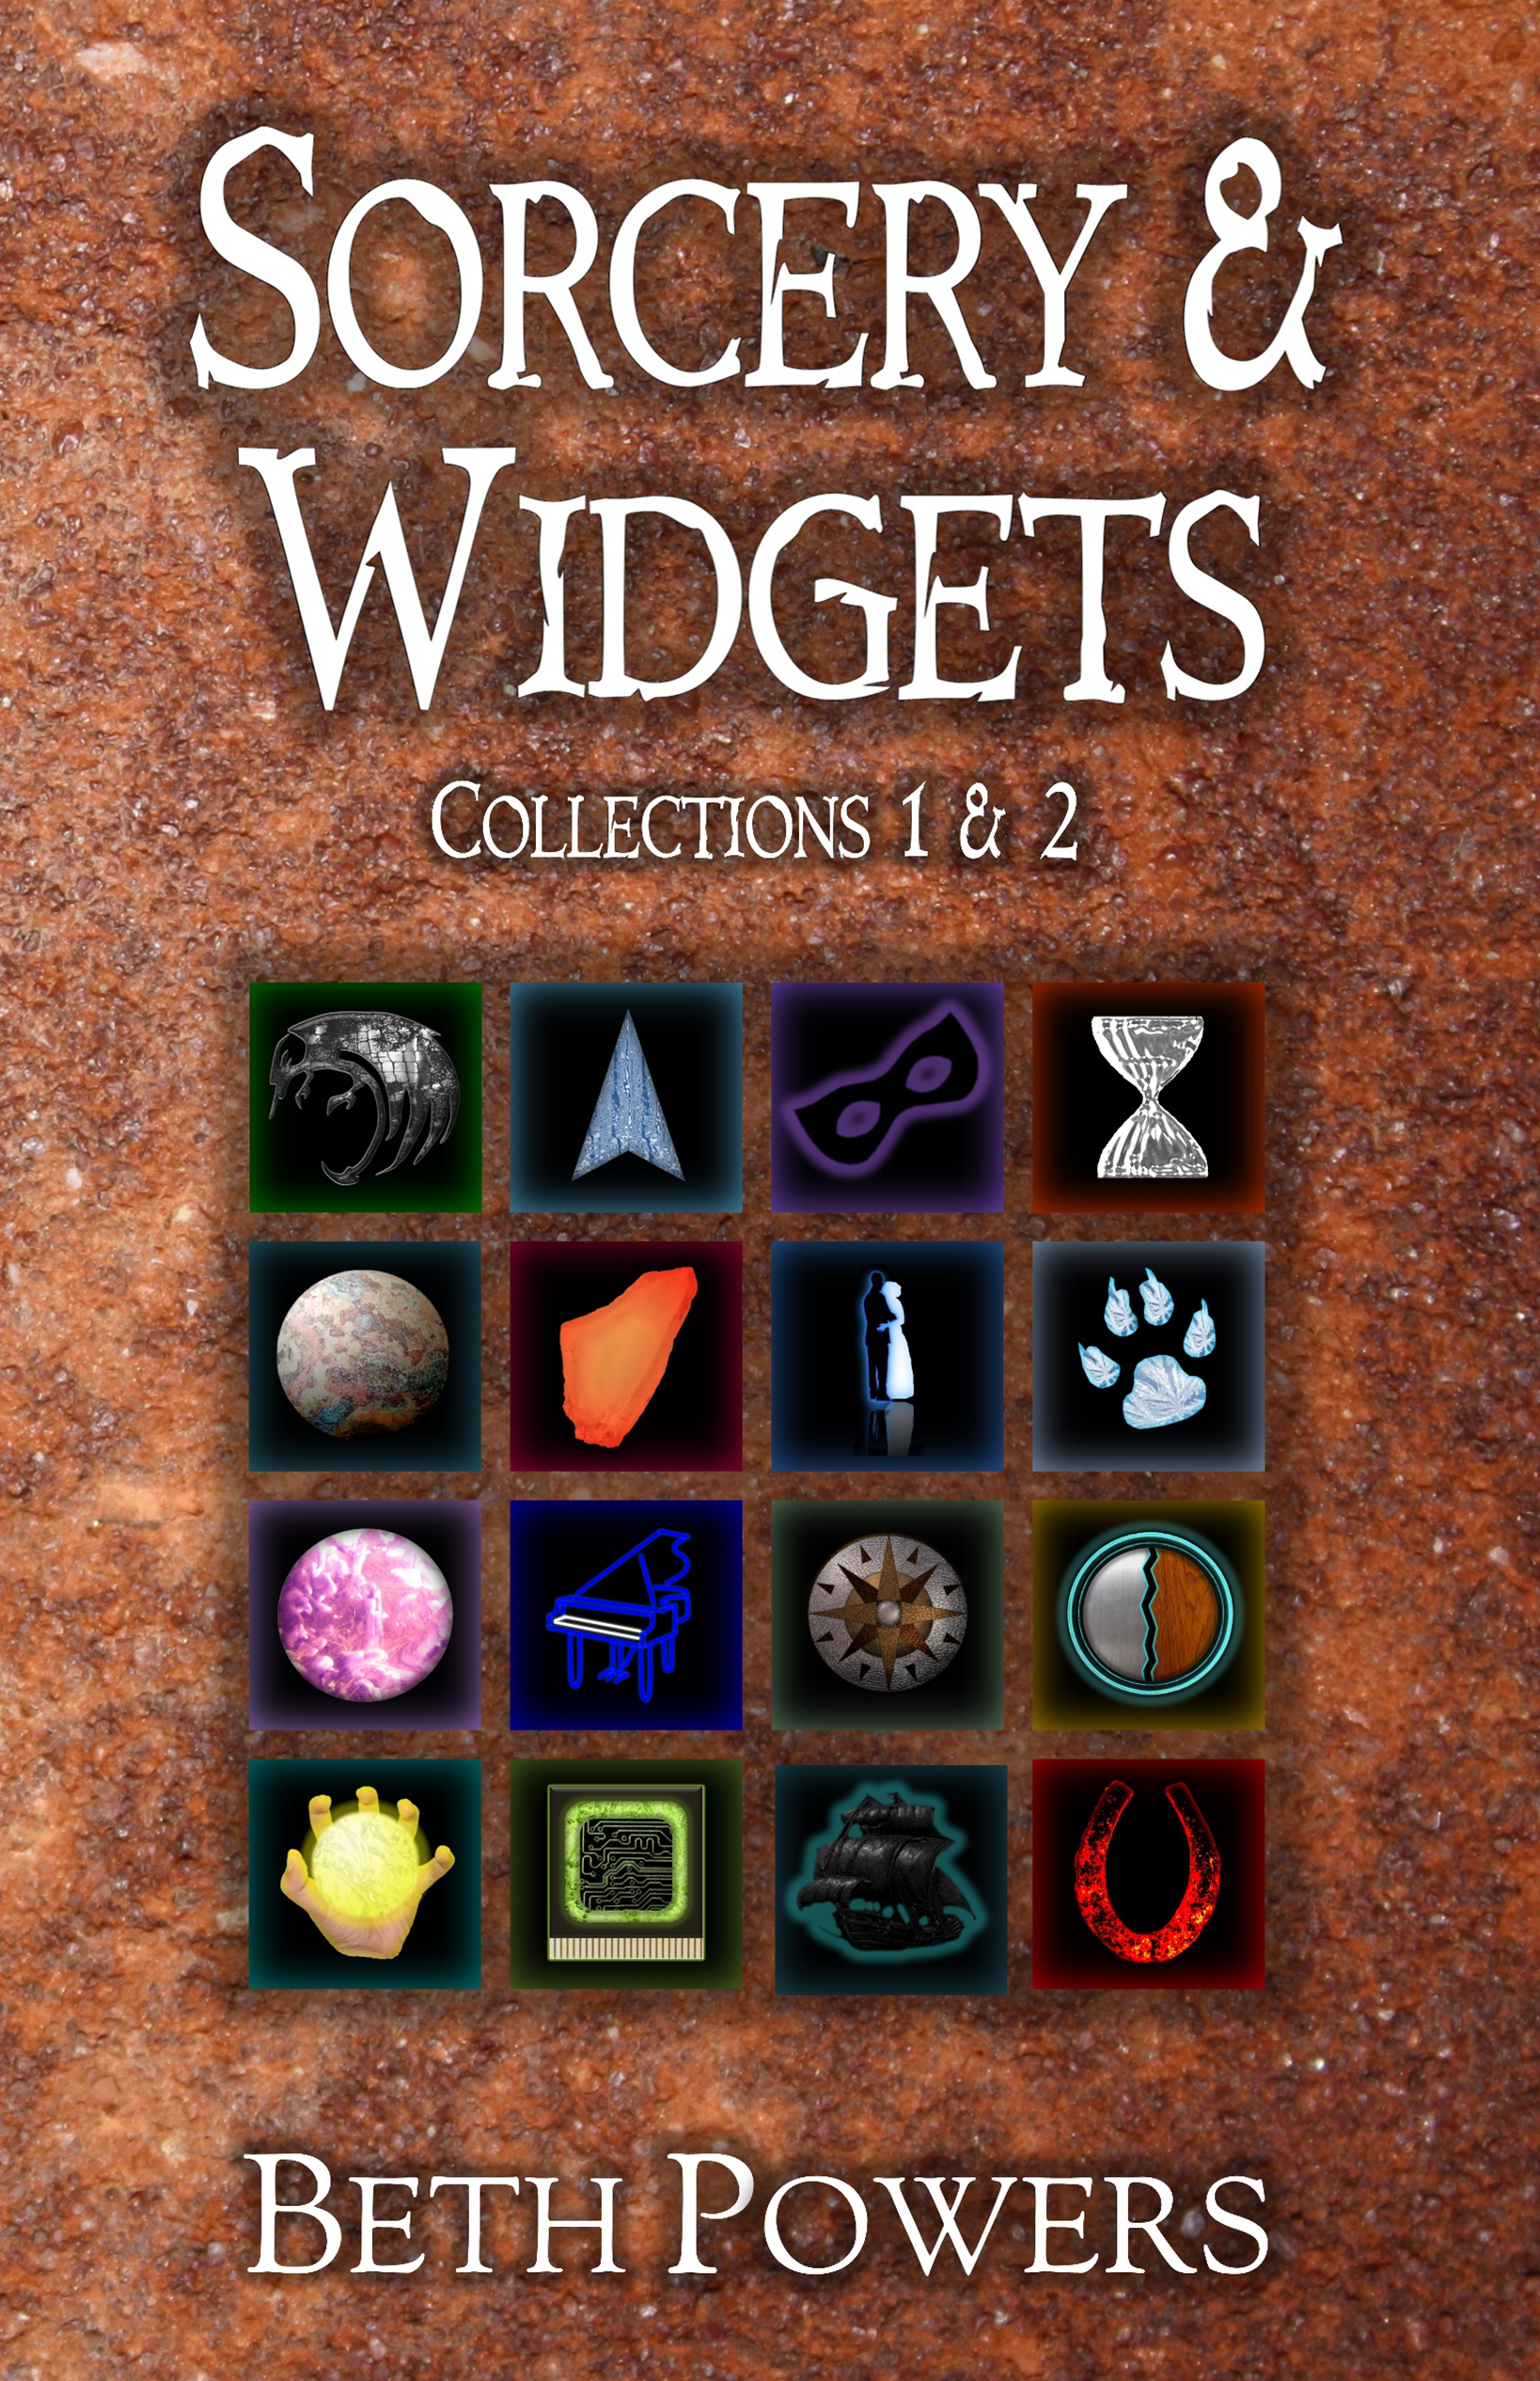 Sorcery & Widgets cover